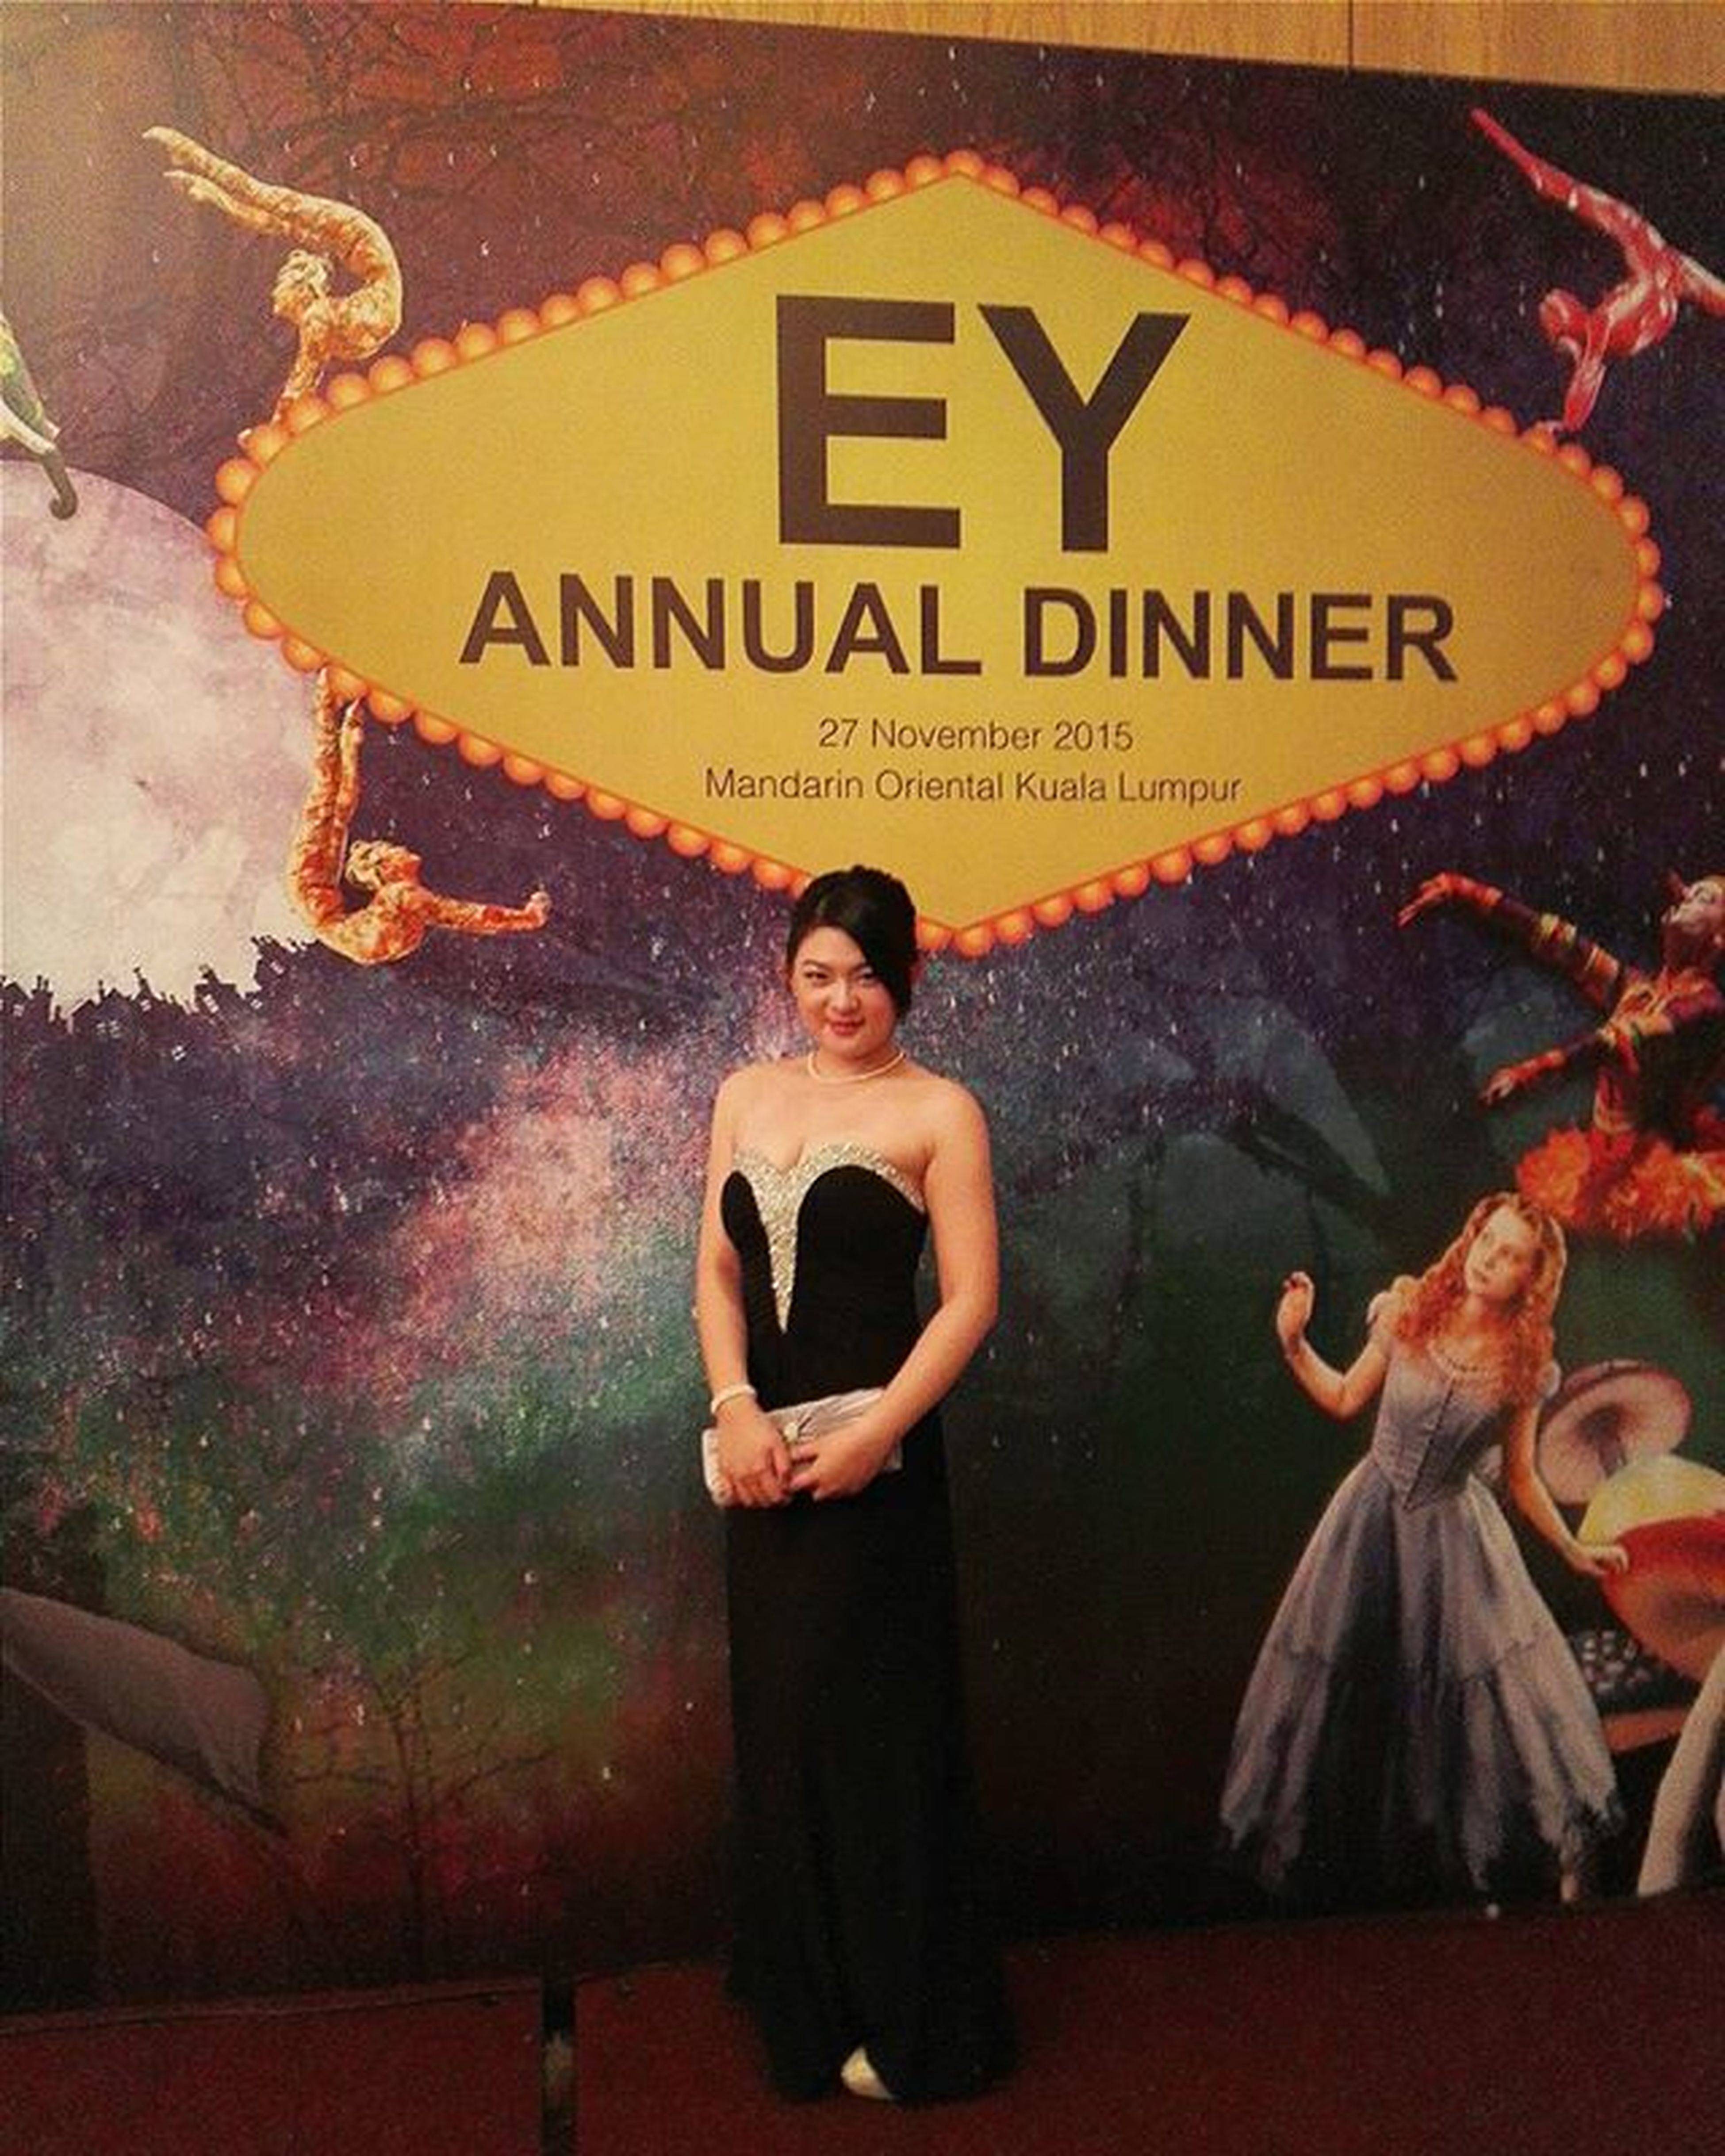 Such great experience attending EY annual dinner for the first time! Eyannualdinner2015 Black Fantabulous  Flamboyant Fantastical